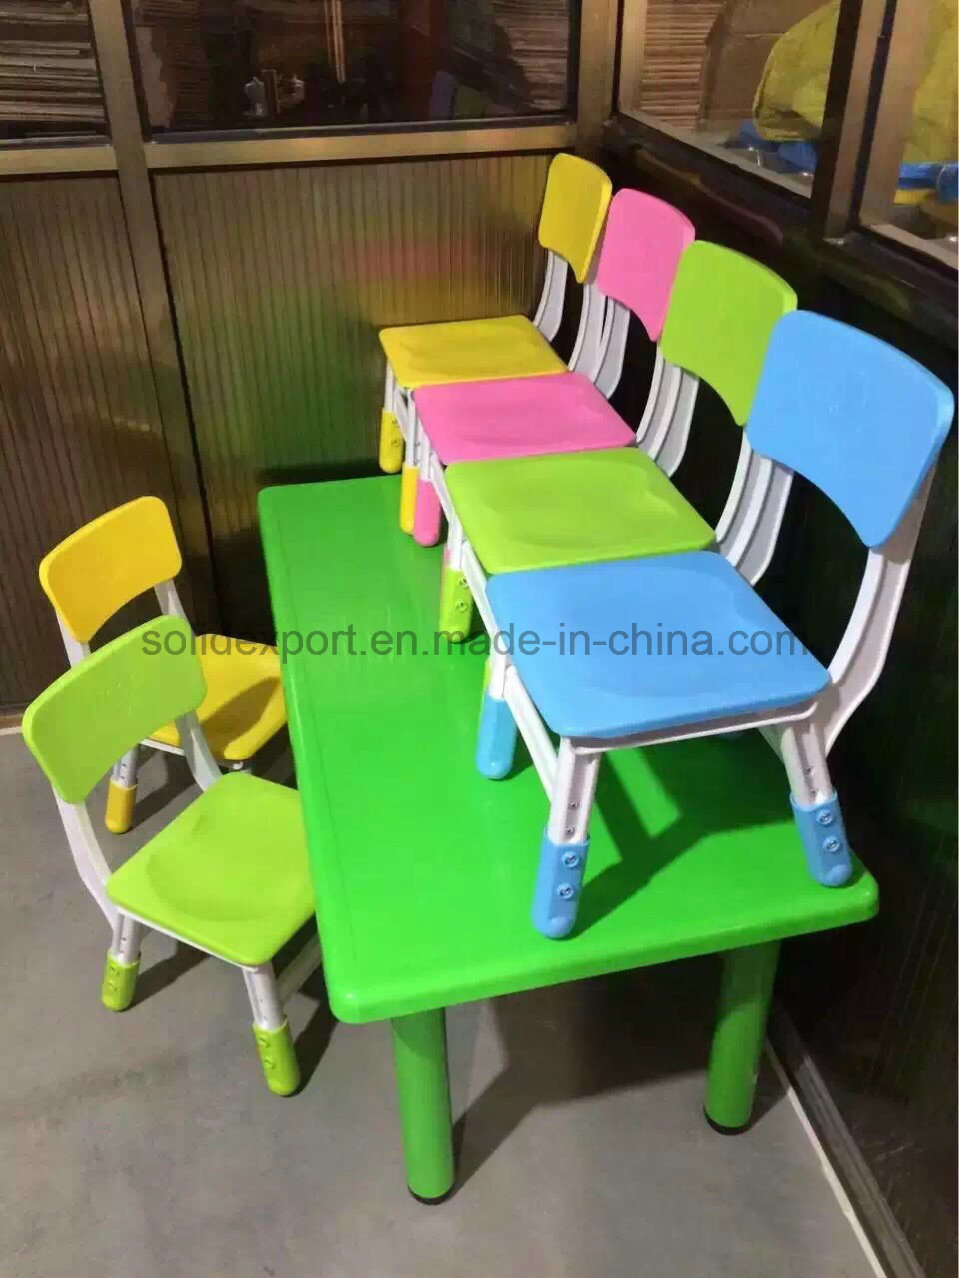 Beautiful Chairs China Beautiful Wholesale Prices Plastic Tables And Chairs Photos